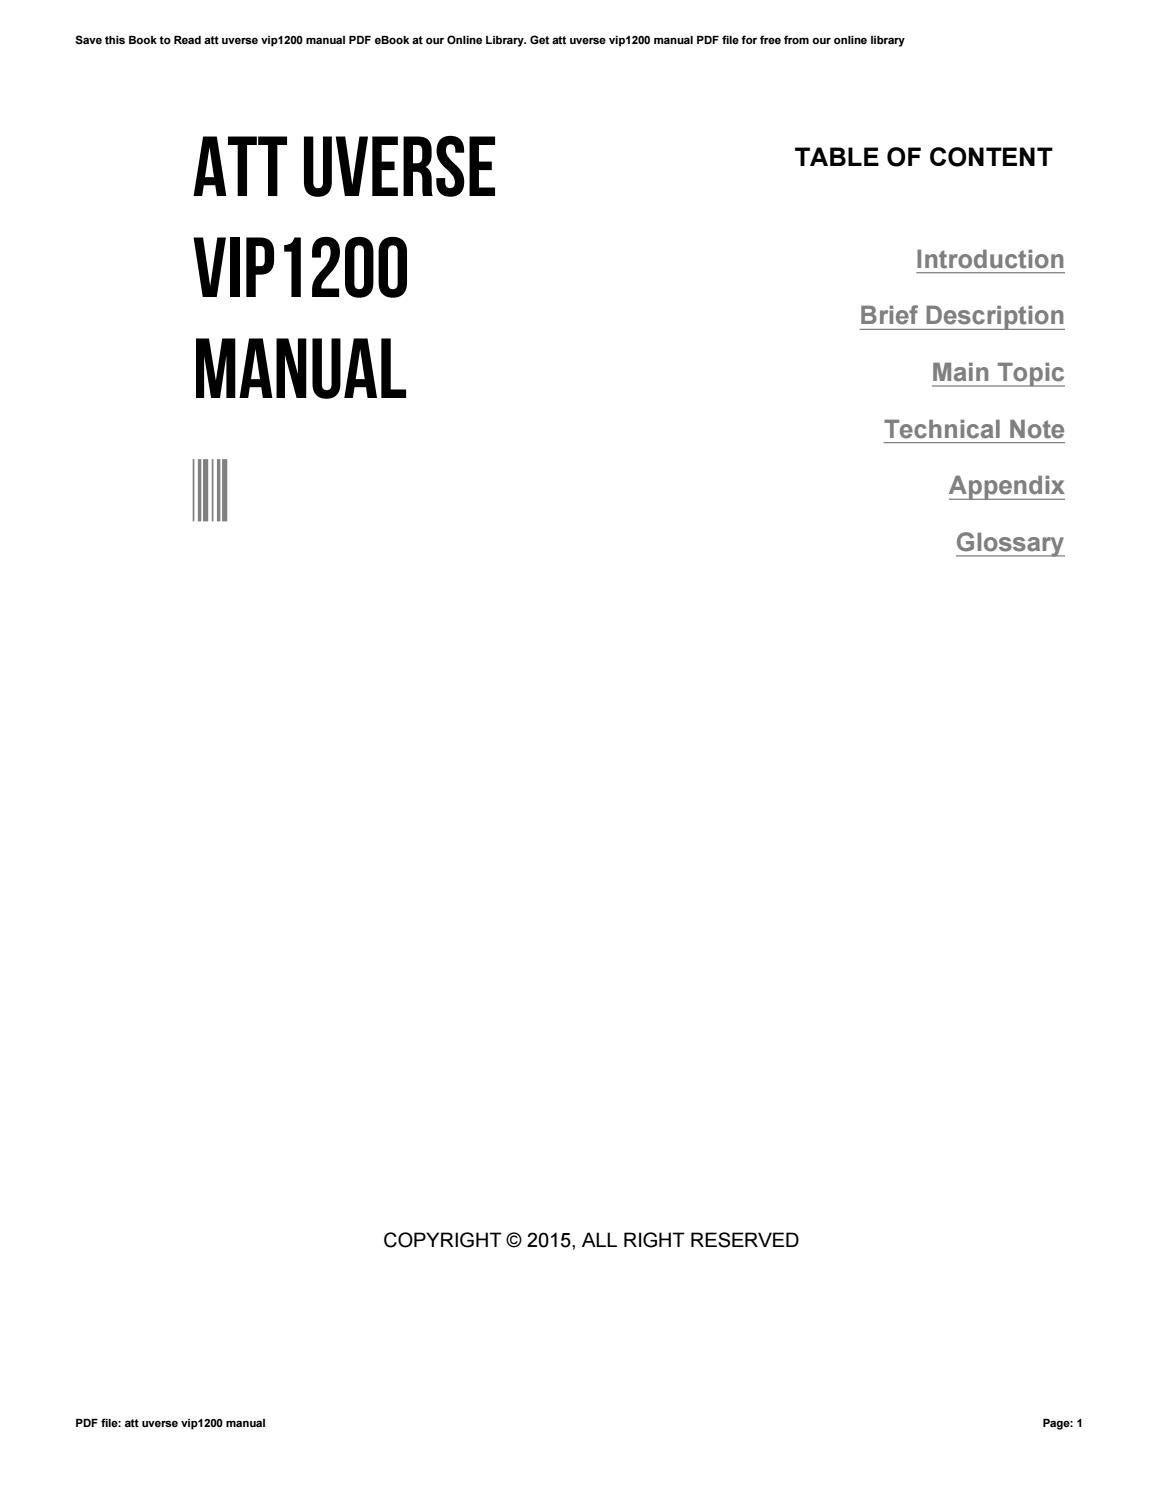 att uverse vip1200 manual by freemail93